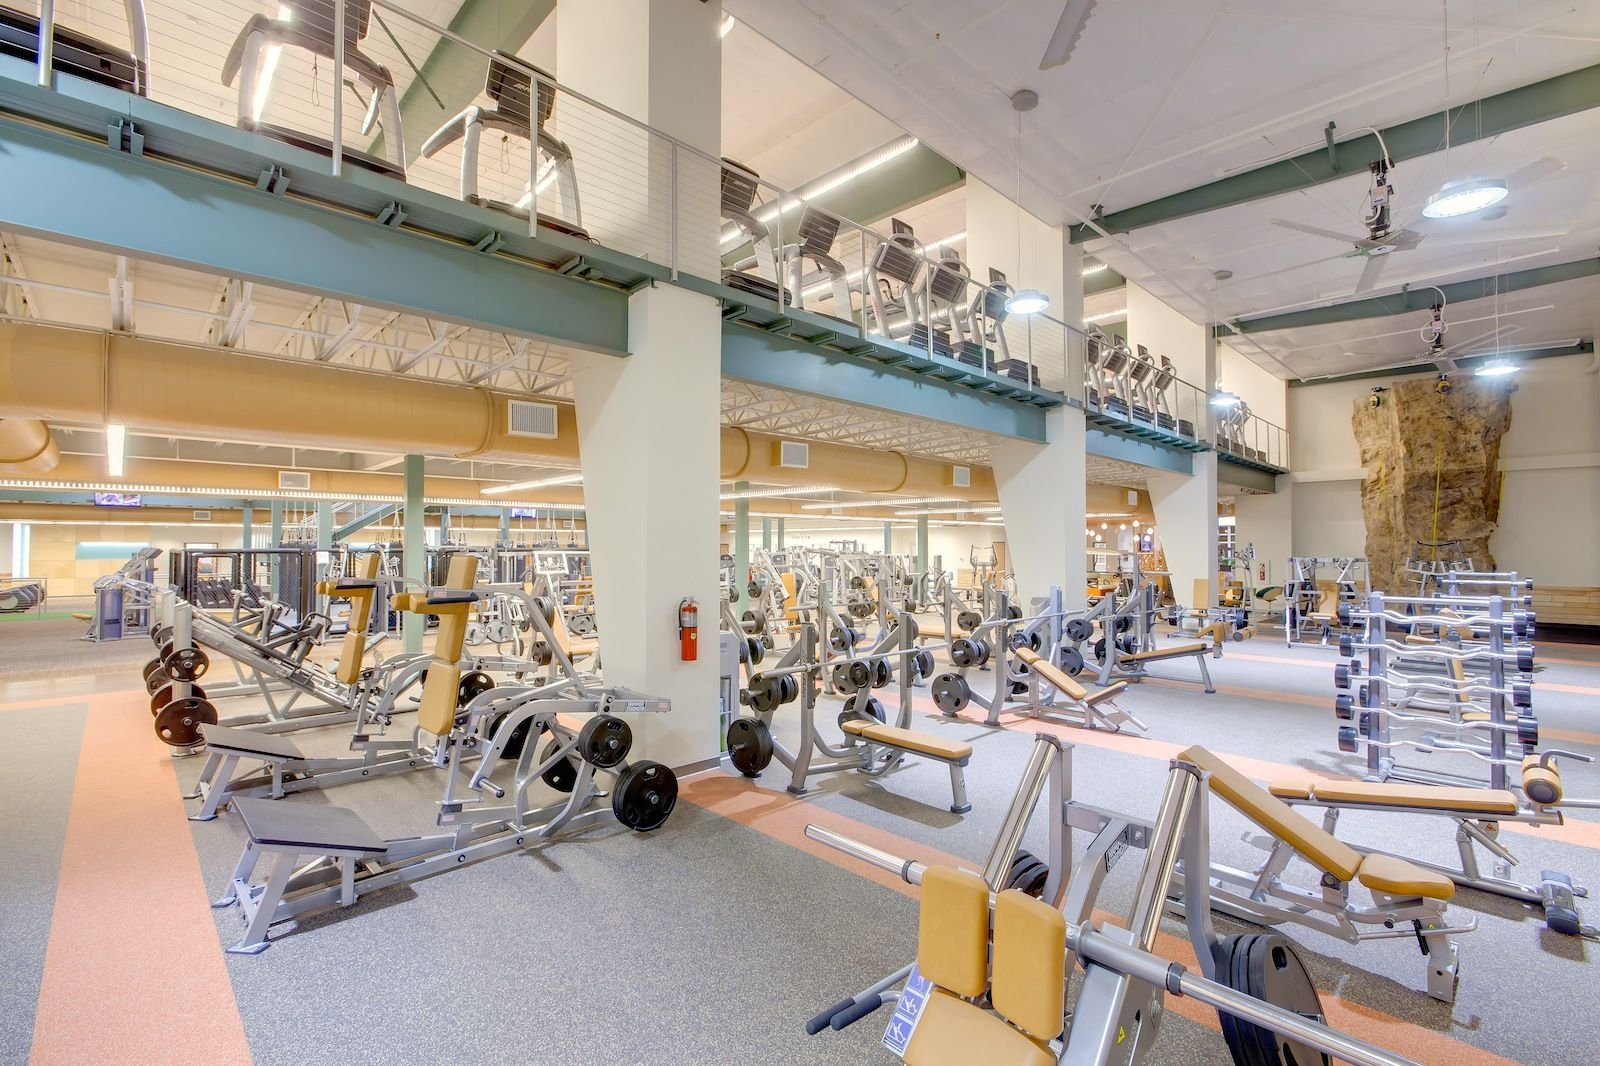 Free Weights And Climbing Wall At Efc Augusta Fitness Center Fitness Fitness Facilities